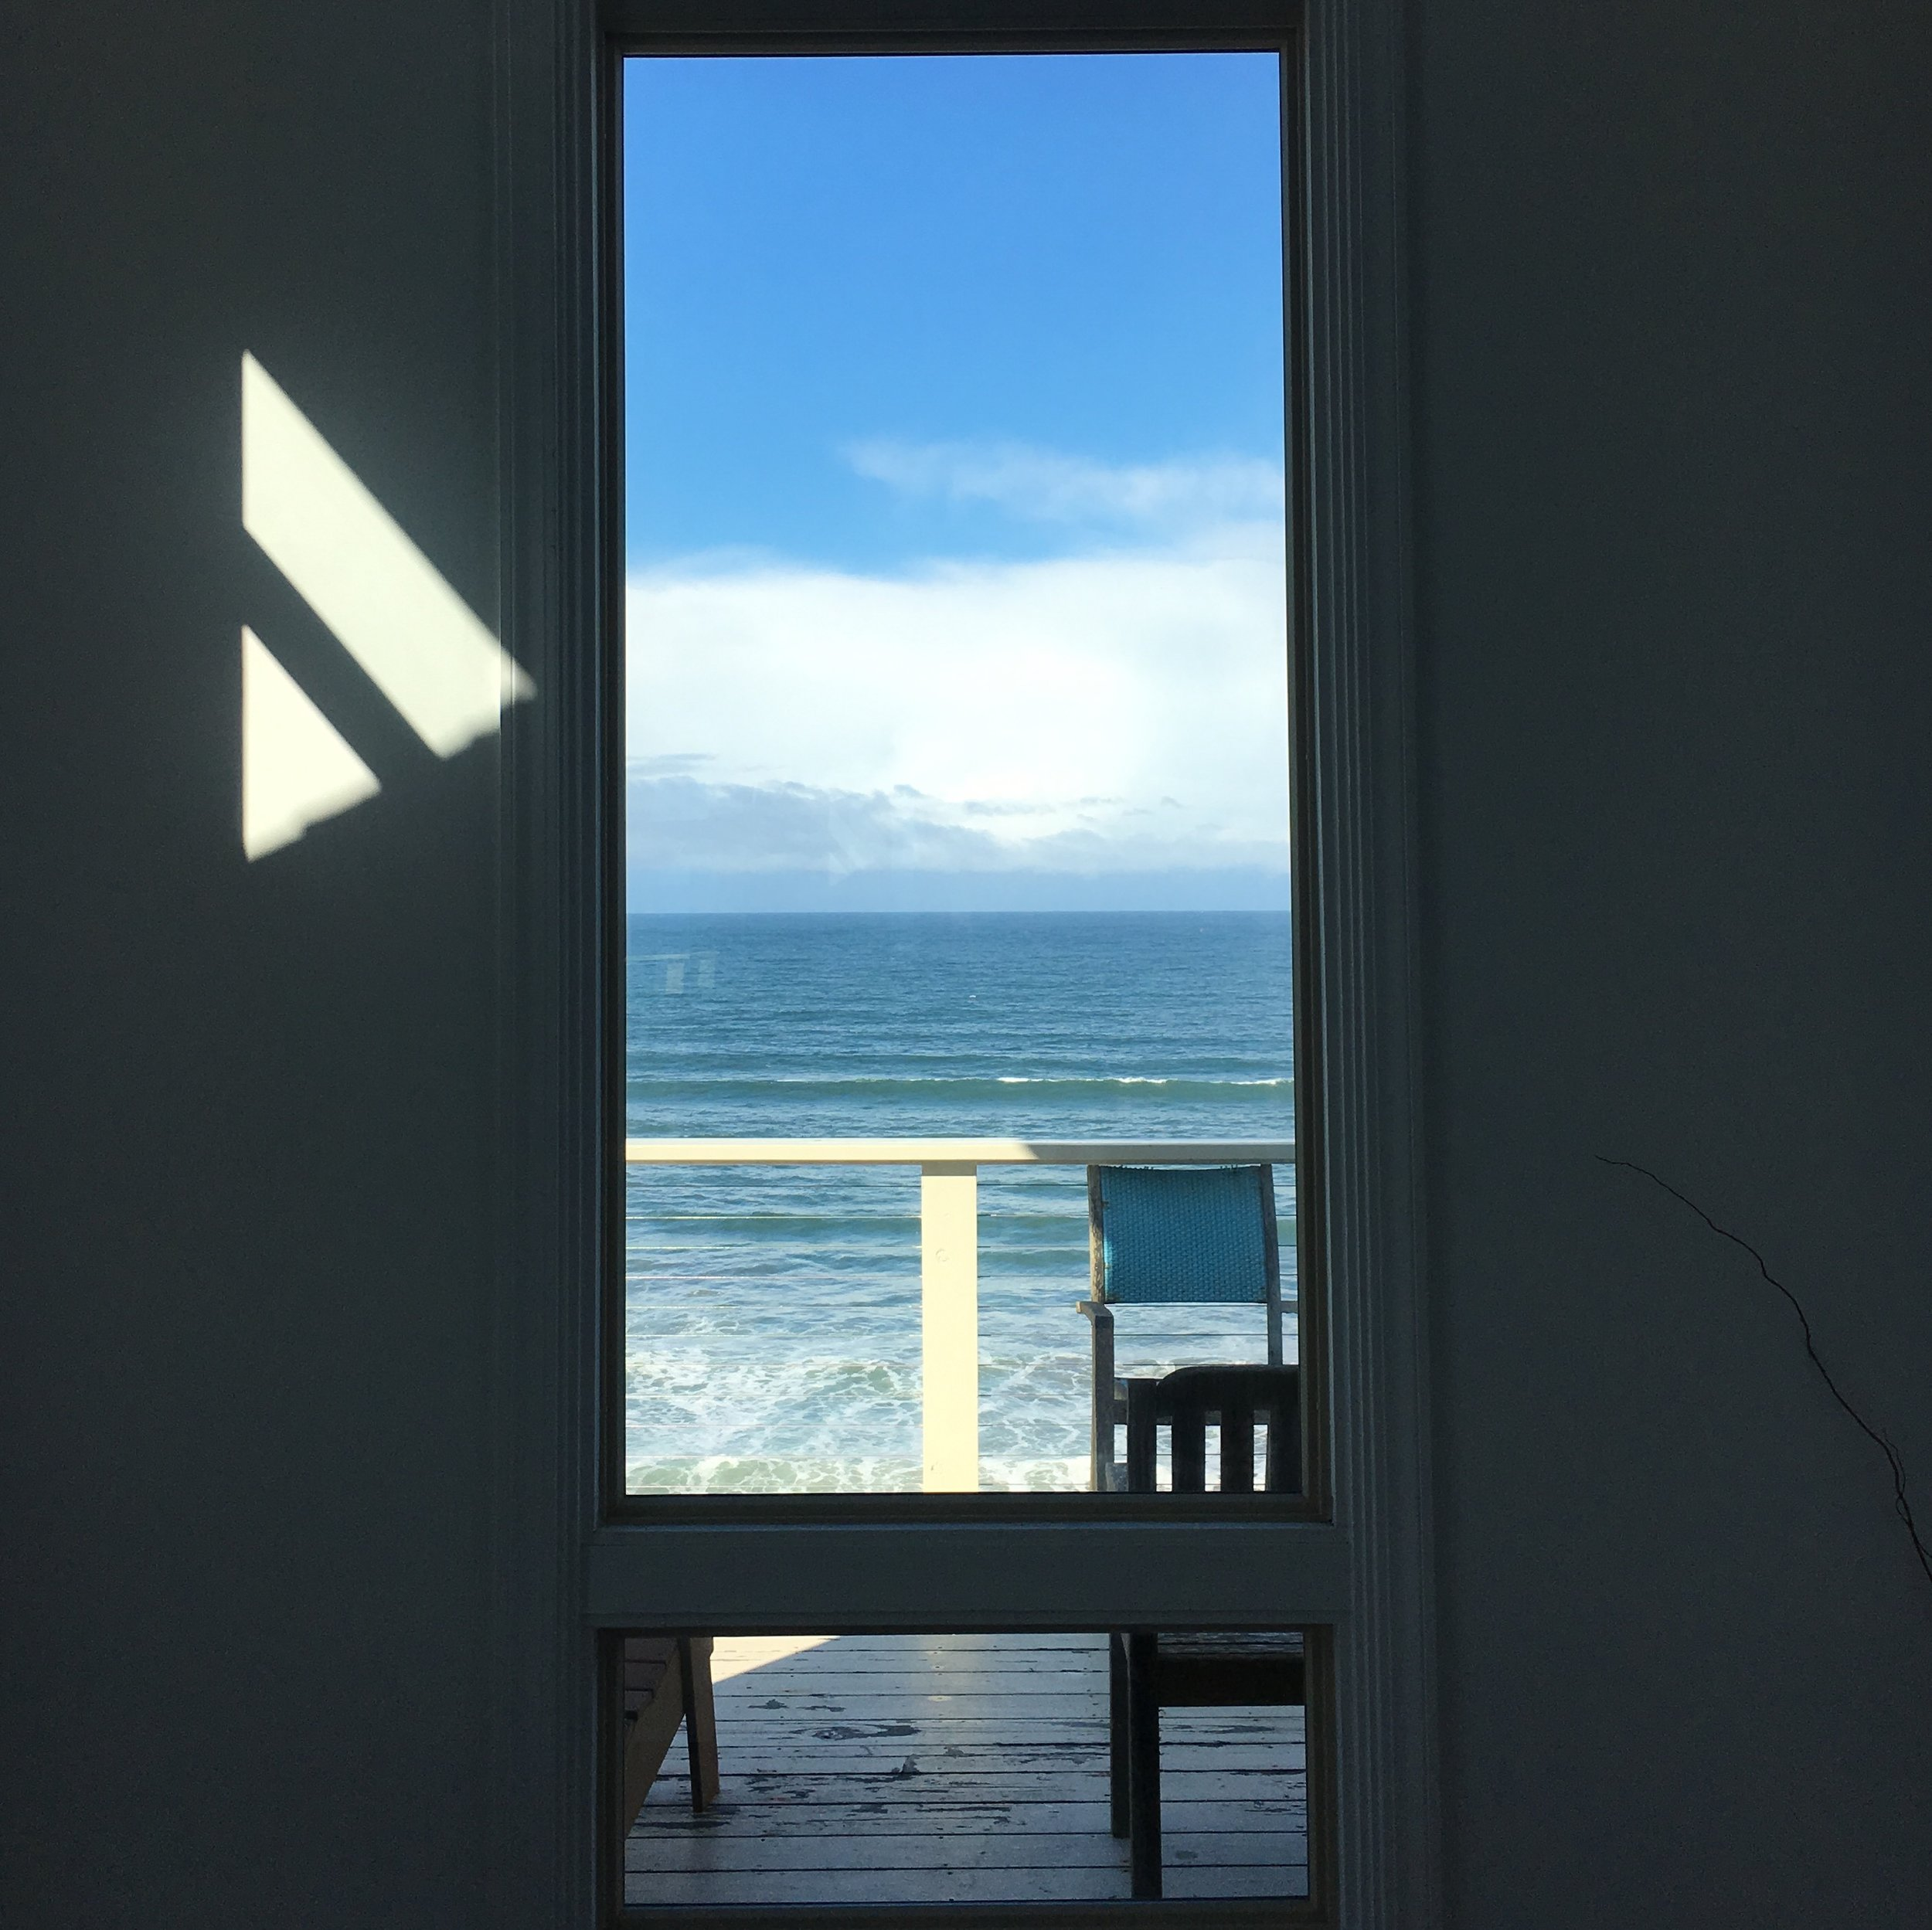 The view at my recent retreat. Our house looked out onto Dillion Beach and one night we saw dolphins swimming in the bay from the hot tub!